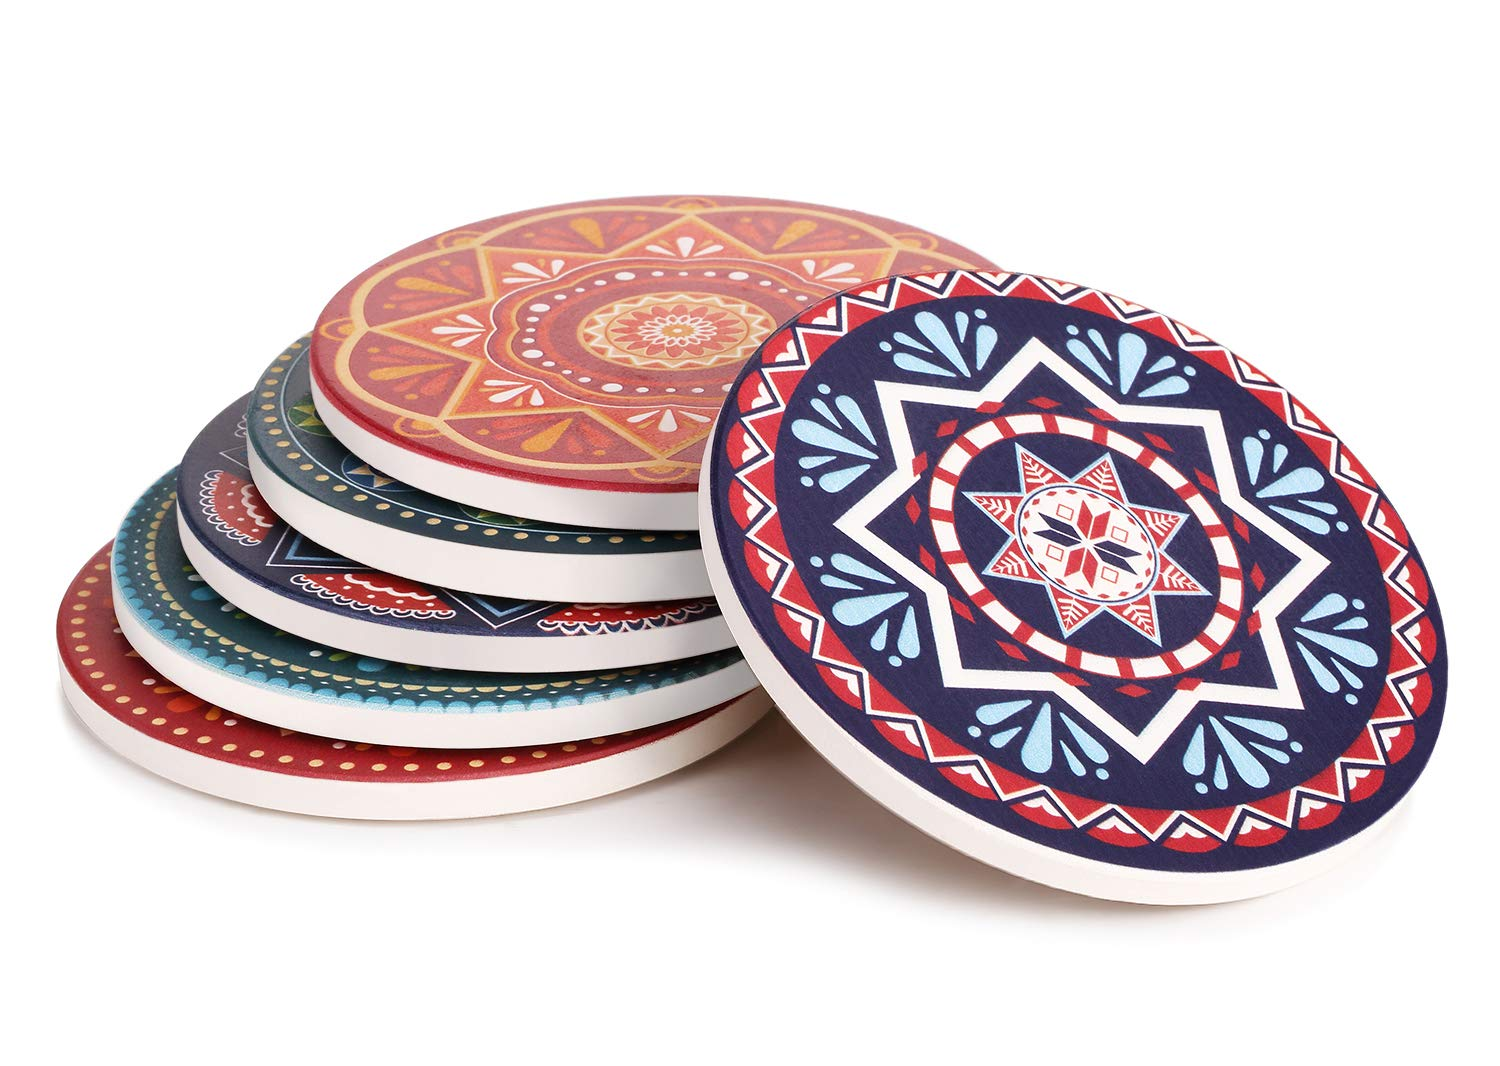 LIFVER Drink Coasters, Mandala Style Absorbent Coaster Sets, Avoid Furniture Being Scratched and Soiled, Suitable for Kinds of Cups, 4 Inches, Set of 6 by LIFVER